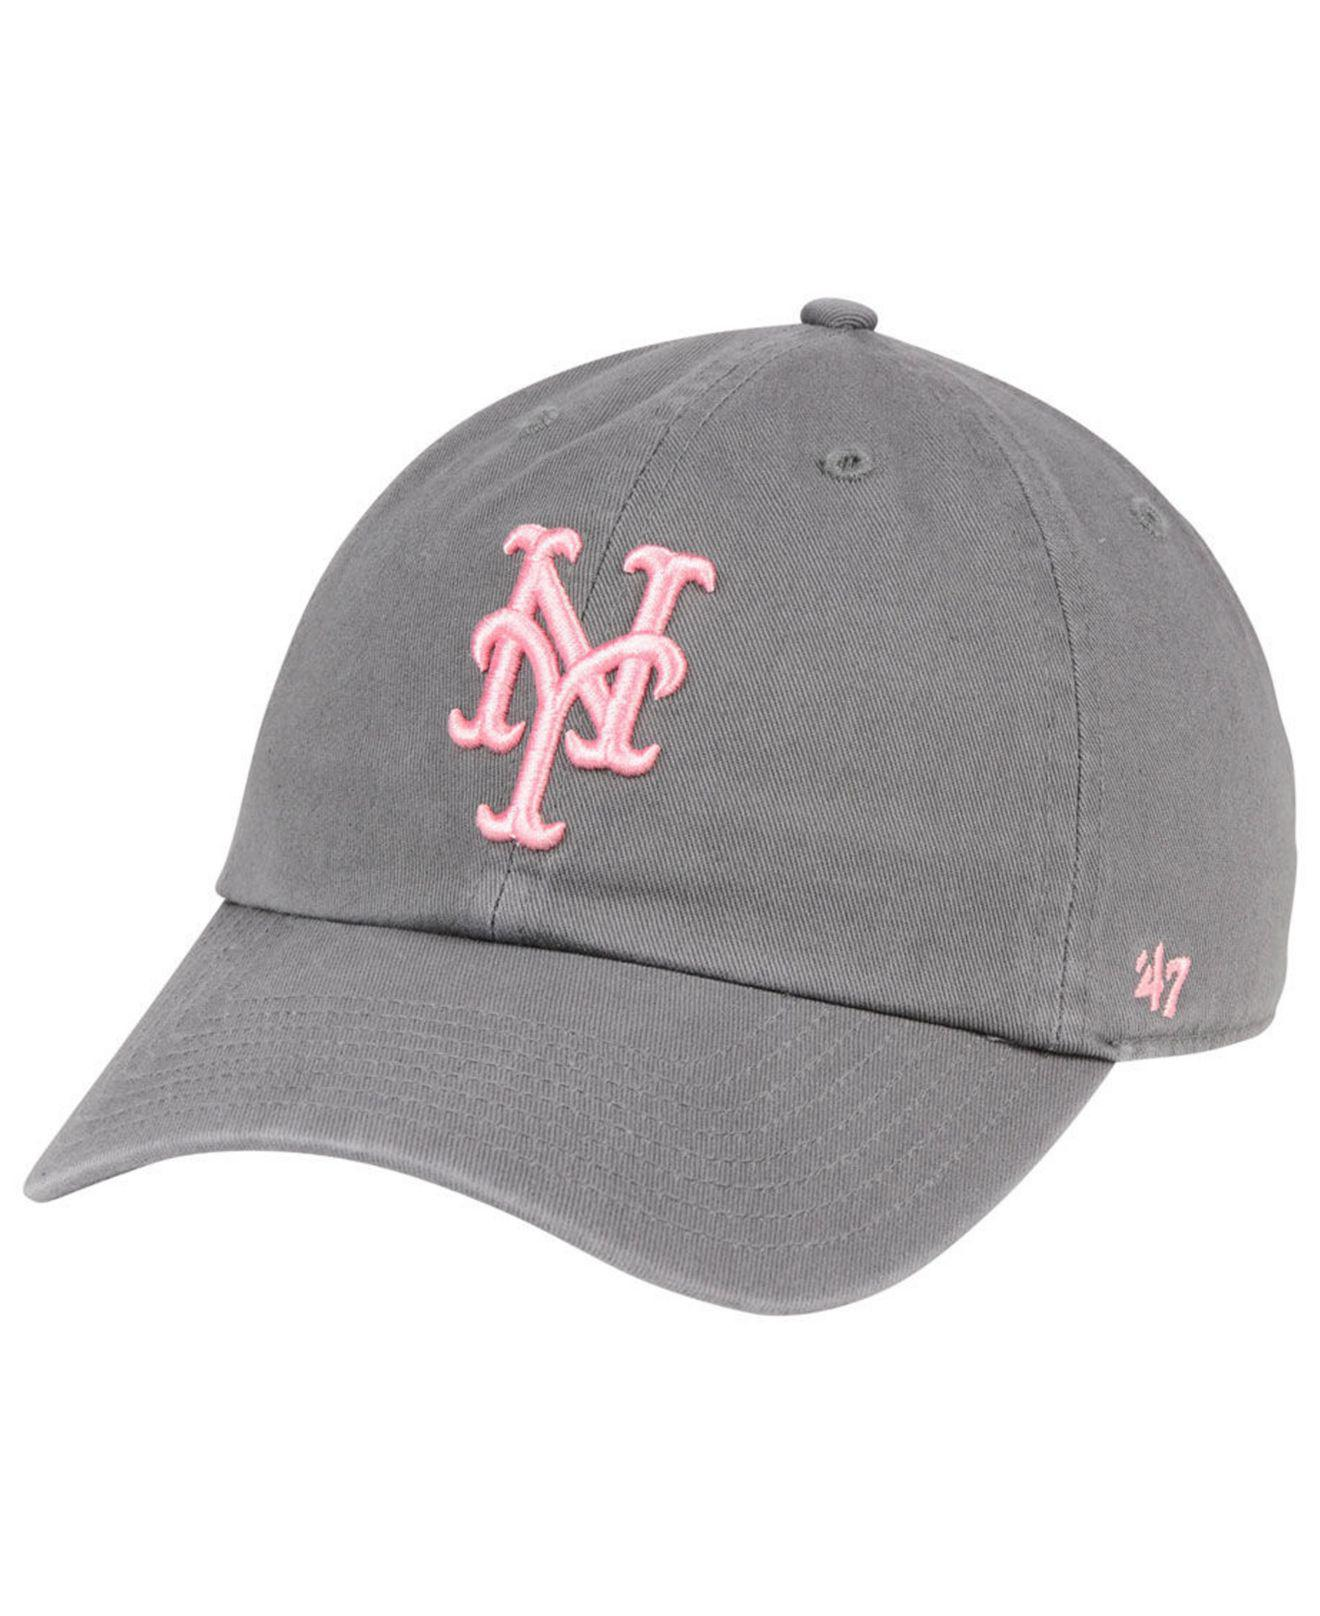 promo code a4cab 1e187 ... sale lyst 47 brand new york mets dark gray pink clean up cap in gray  16928